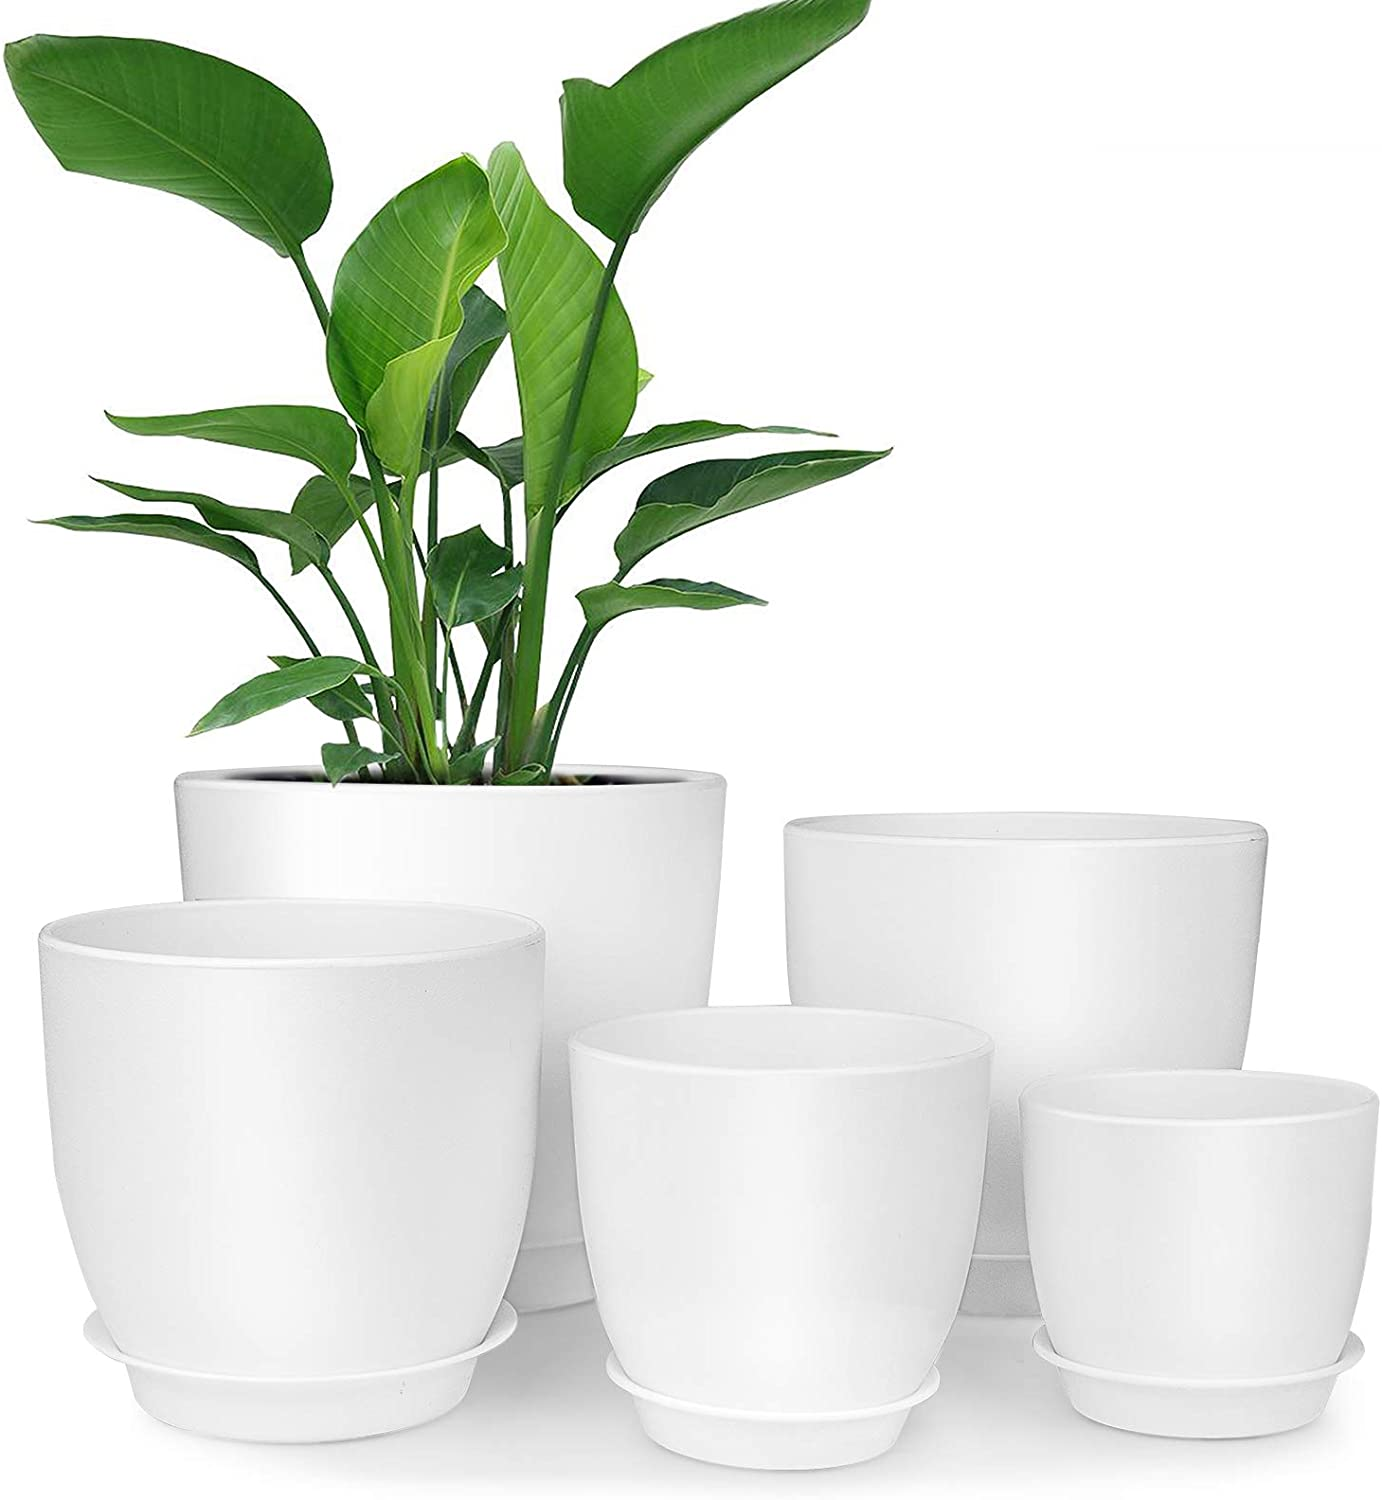 Plastic Planter, HOMENOTE 7/6/5.5/4.5/3.5 Inch Flower Pot Indoor Modern Decorative Plastic Pots for Plants with Drainage Hole and Tray for All House Plants, Succulents, Flowers, and Cactus, White: Kitchen & Dining